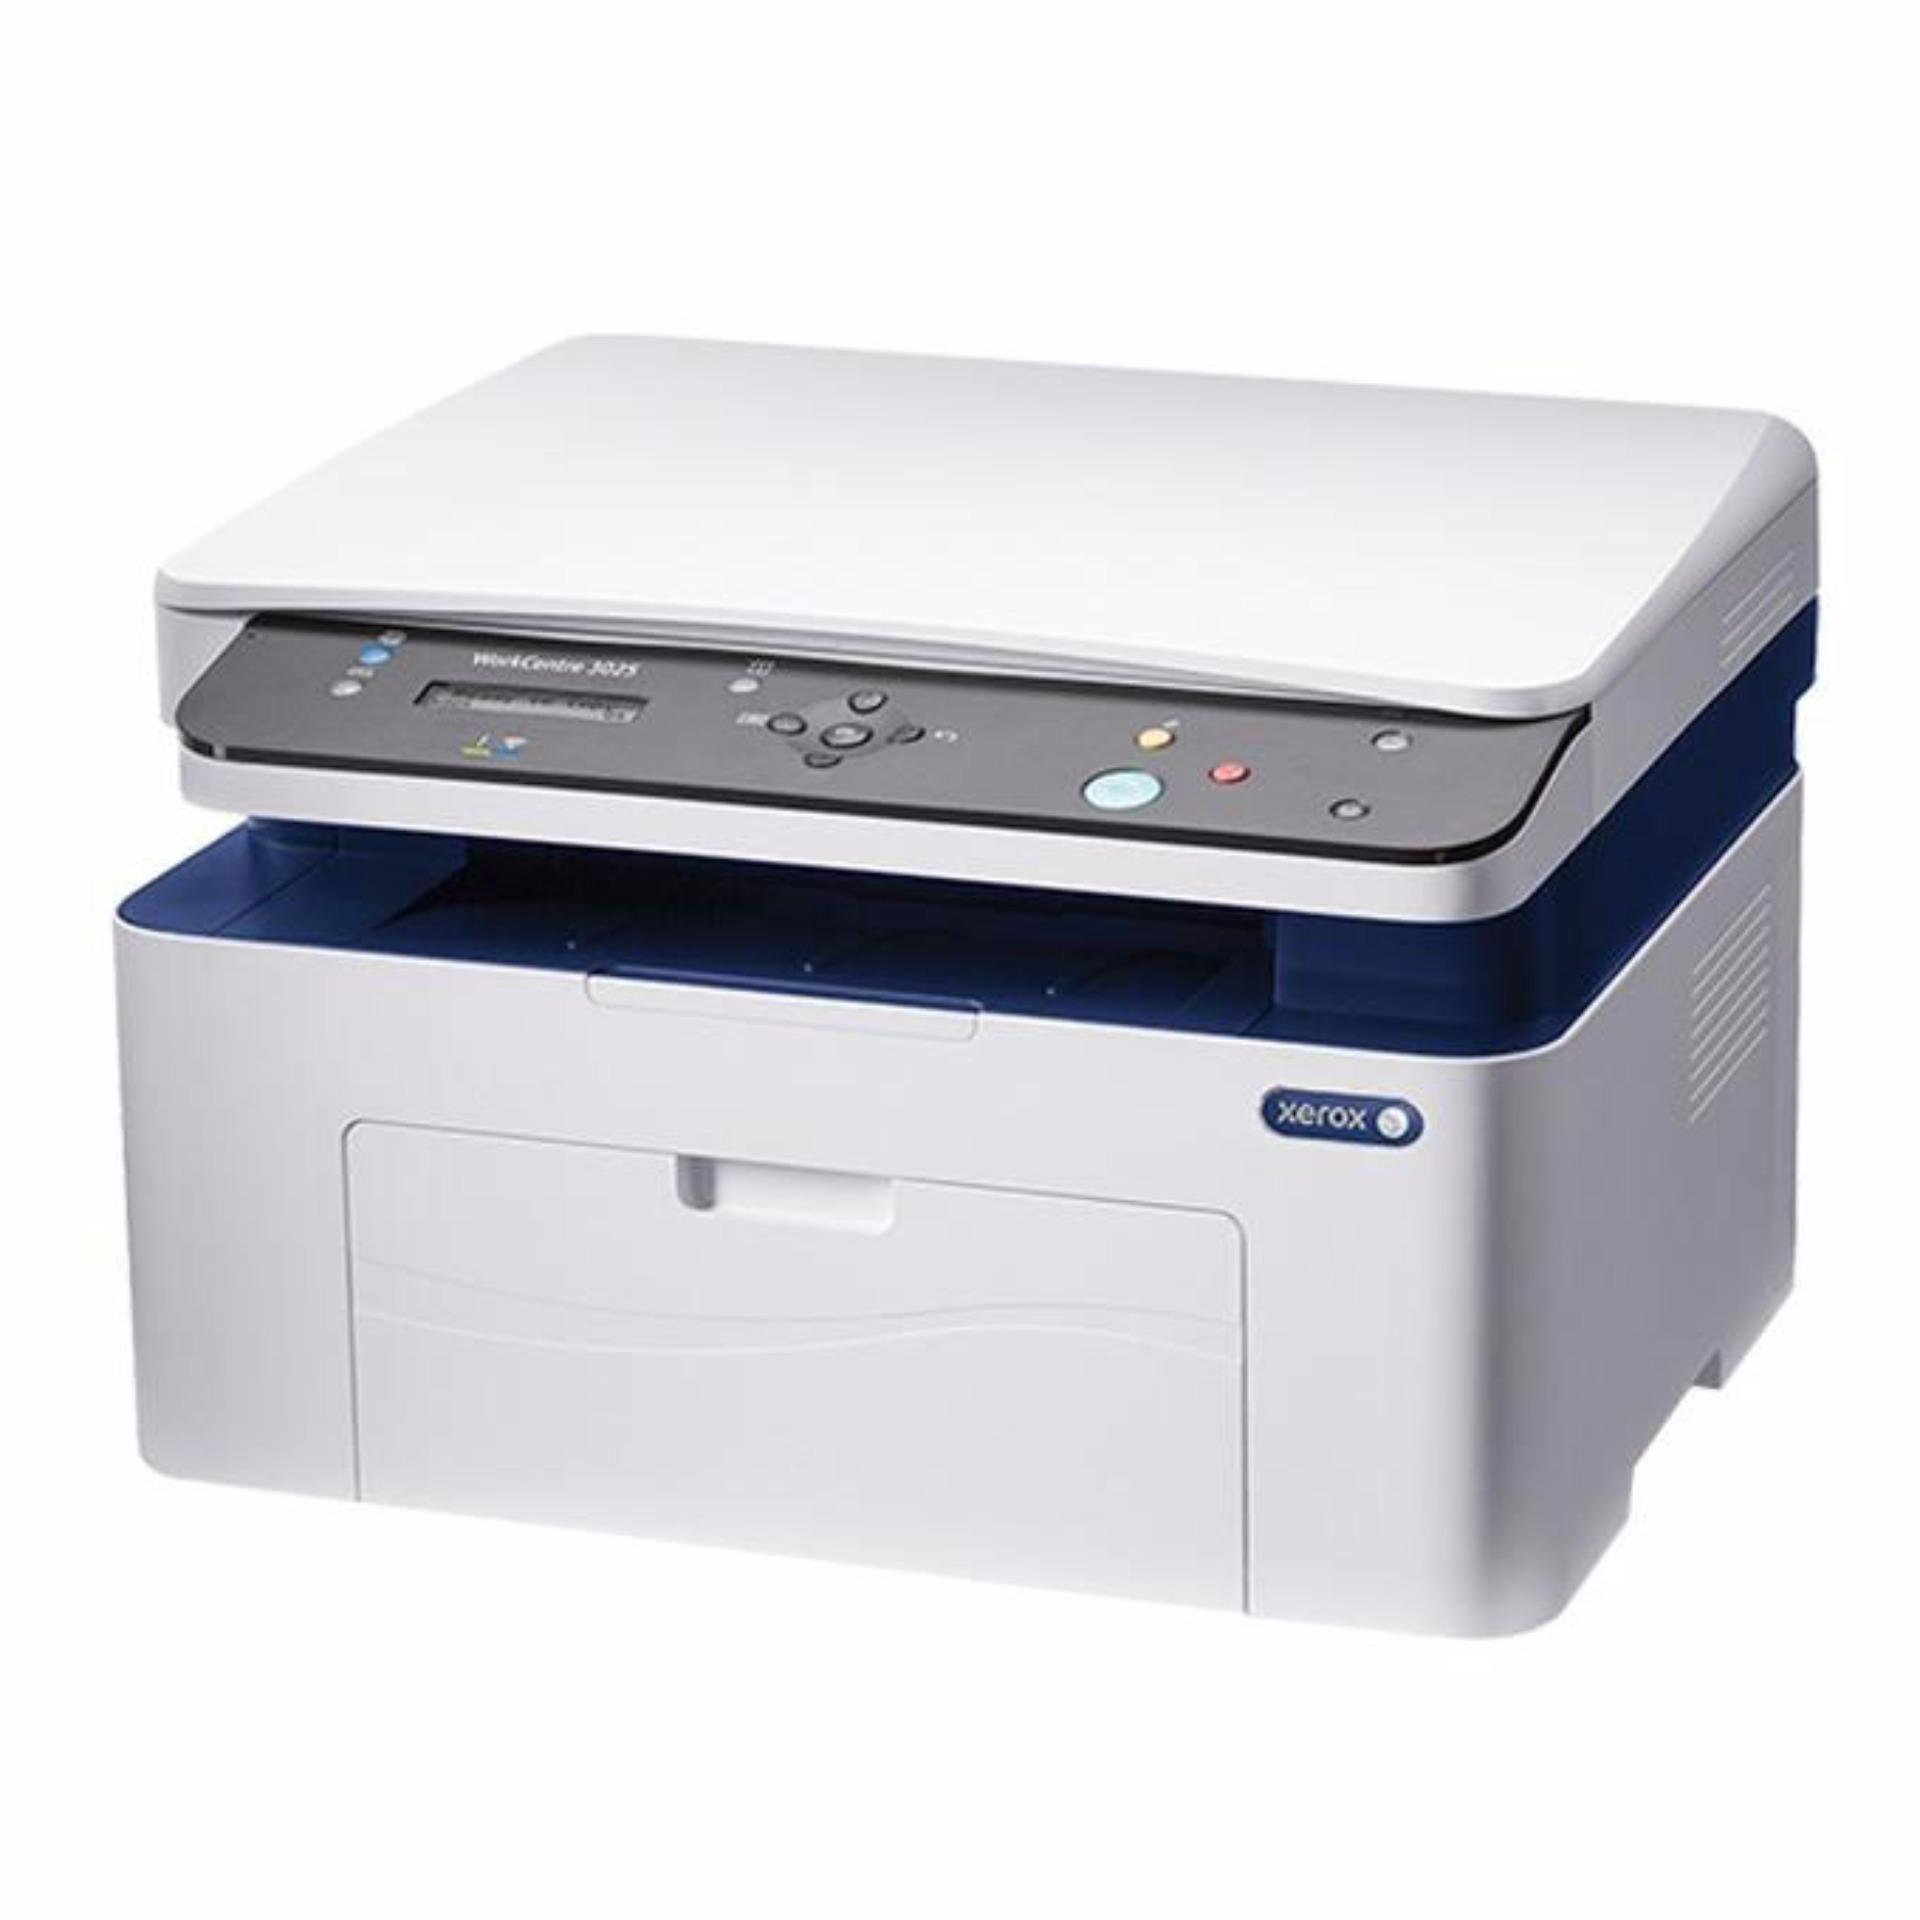 Xeroxbiore Buy At Best Price In Bangladesh Www Kao Biore Facial Foam Men S Double Scrub Cool Oil Clear 100g Work Centre 3025 Multifunctional Printer With Fax White